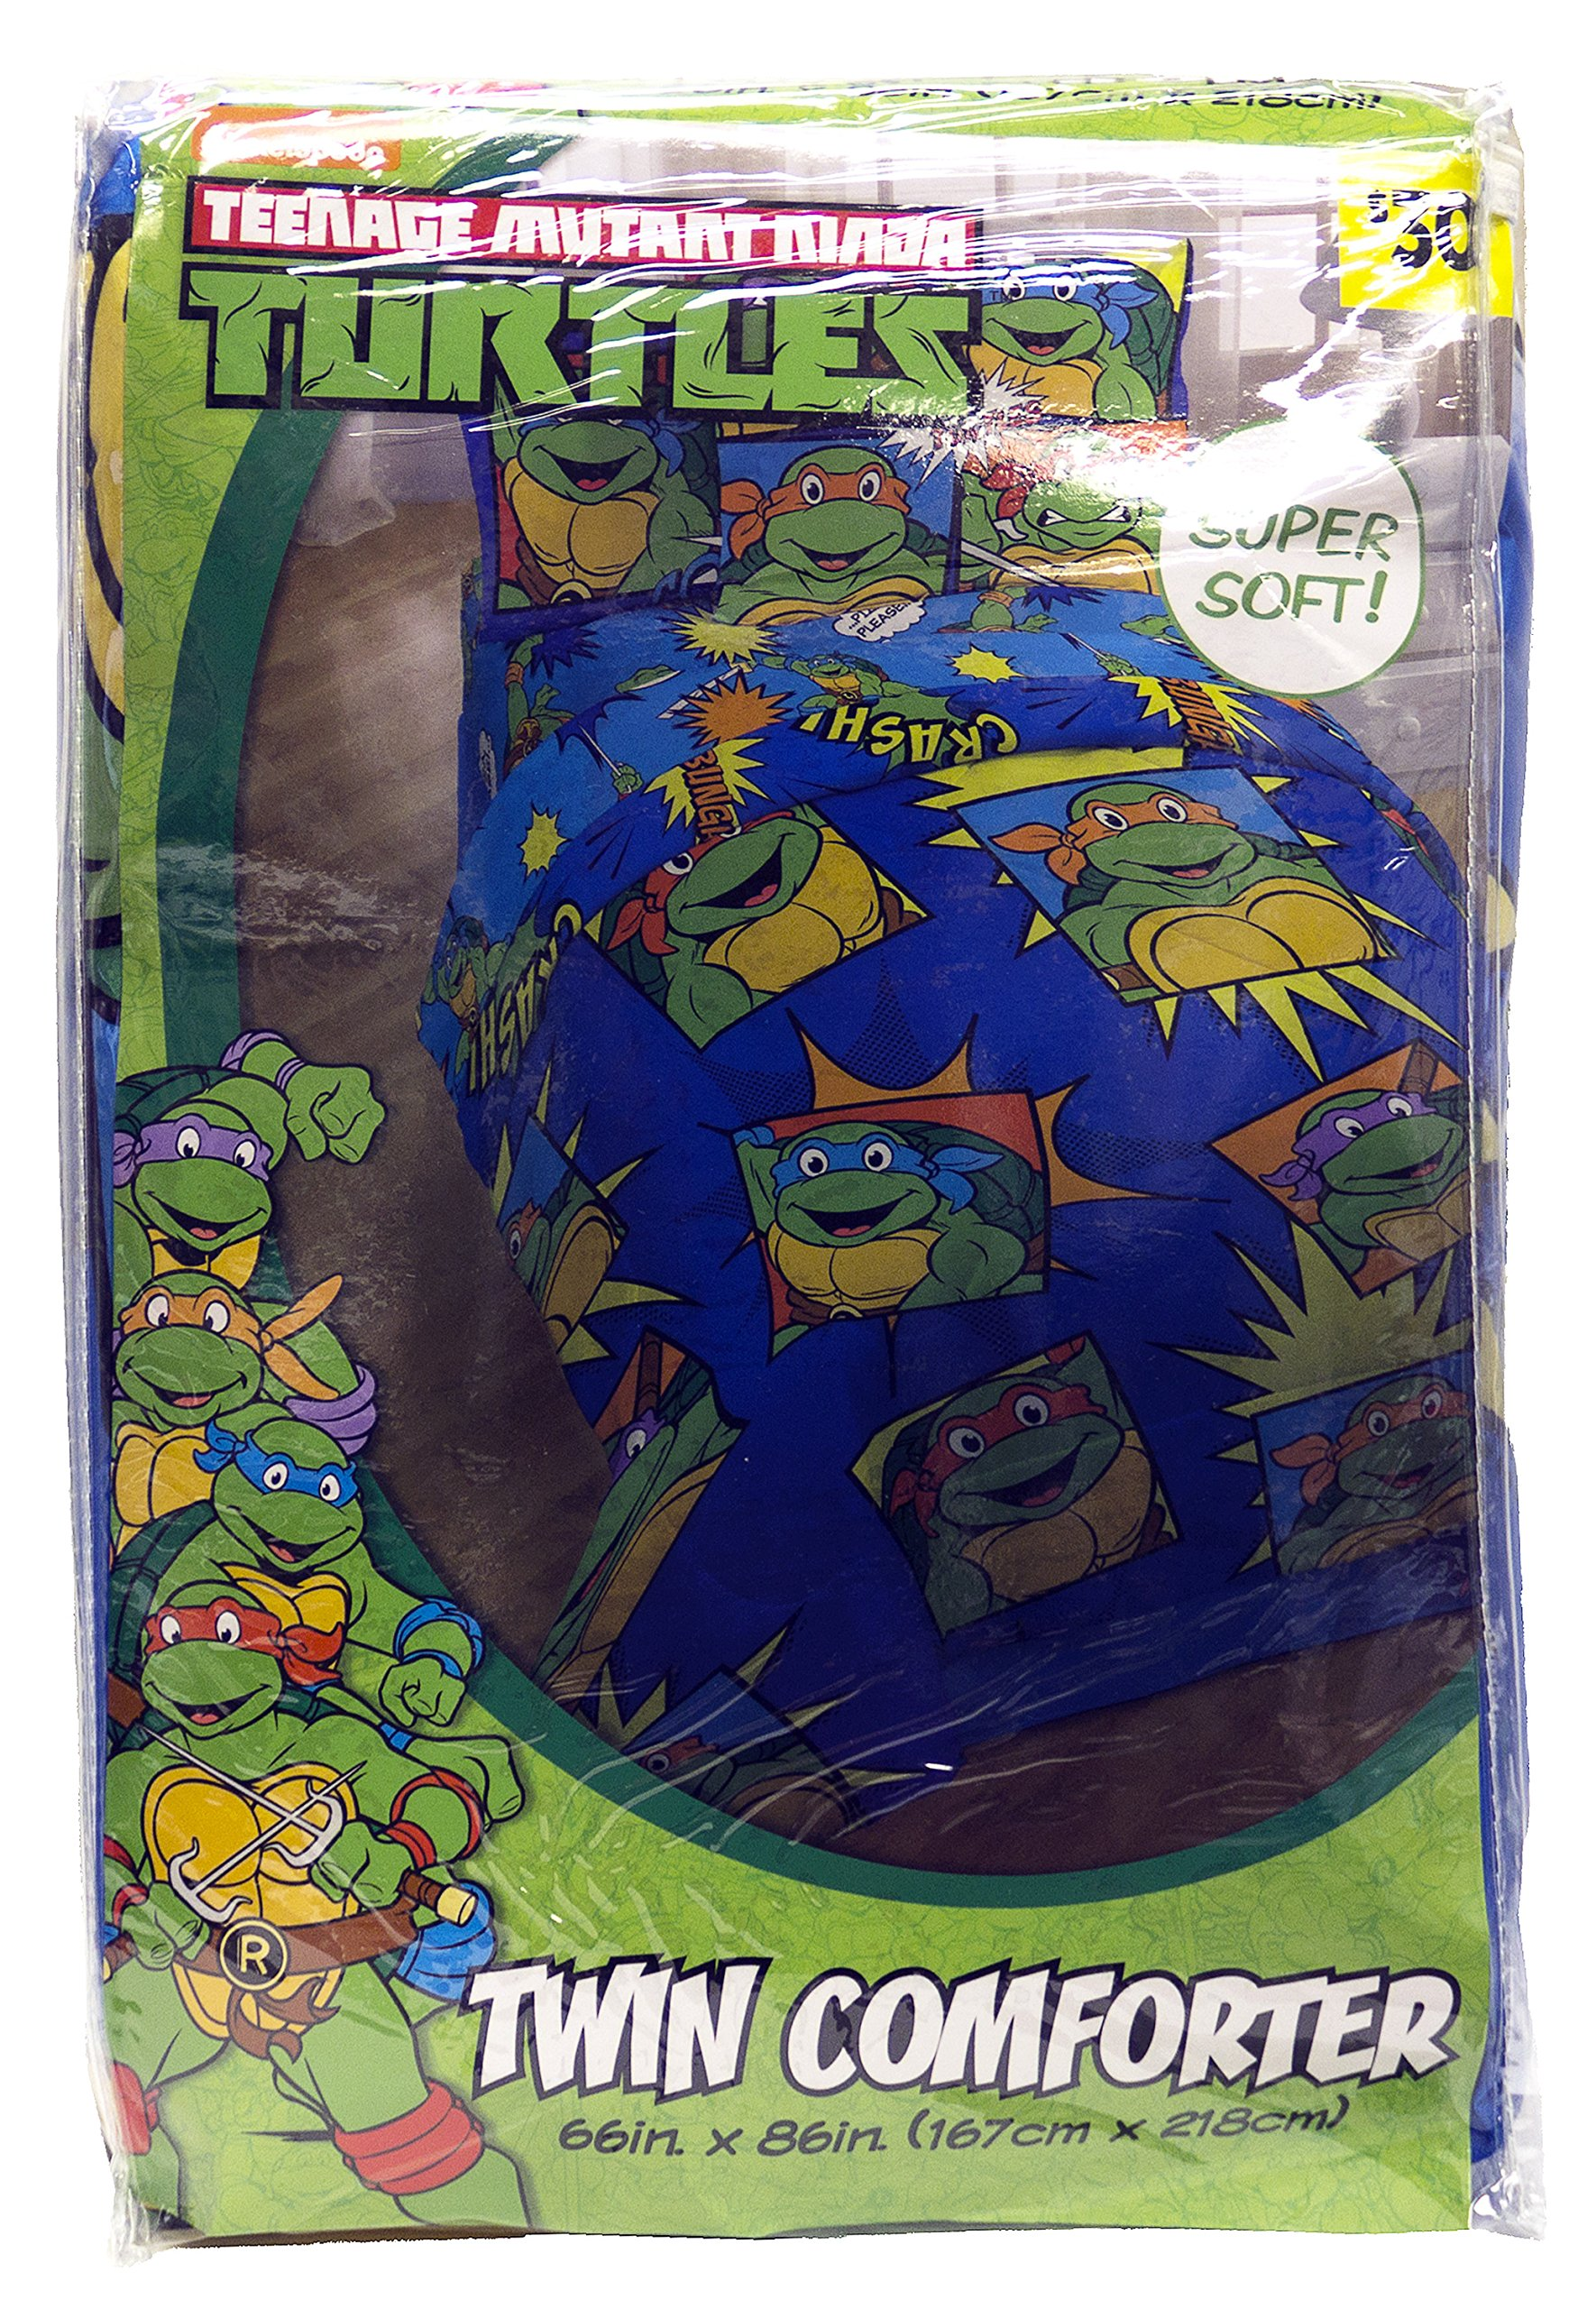 NIckelodeon Teenage Mutant Ninja Turtles Team Turtles Twin Comforter - Super Soft Kids Reversible Bedding features the Turtles - Fade Resistant Polyester Microfiber Fill (Official NIckelodeon Product) by Jay Franco (Image #4)